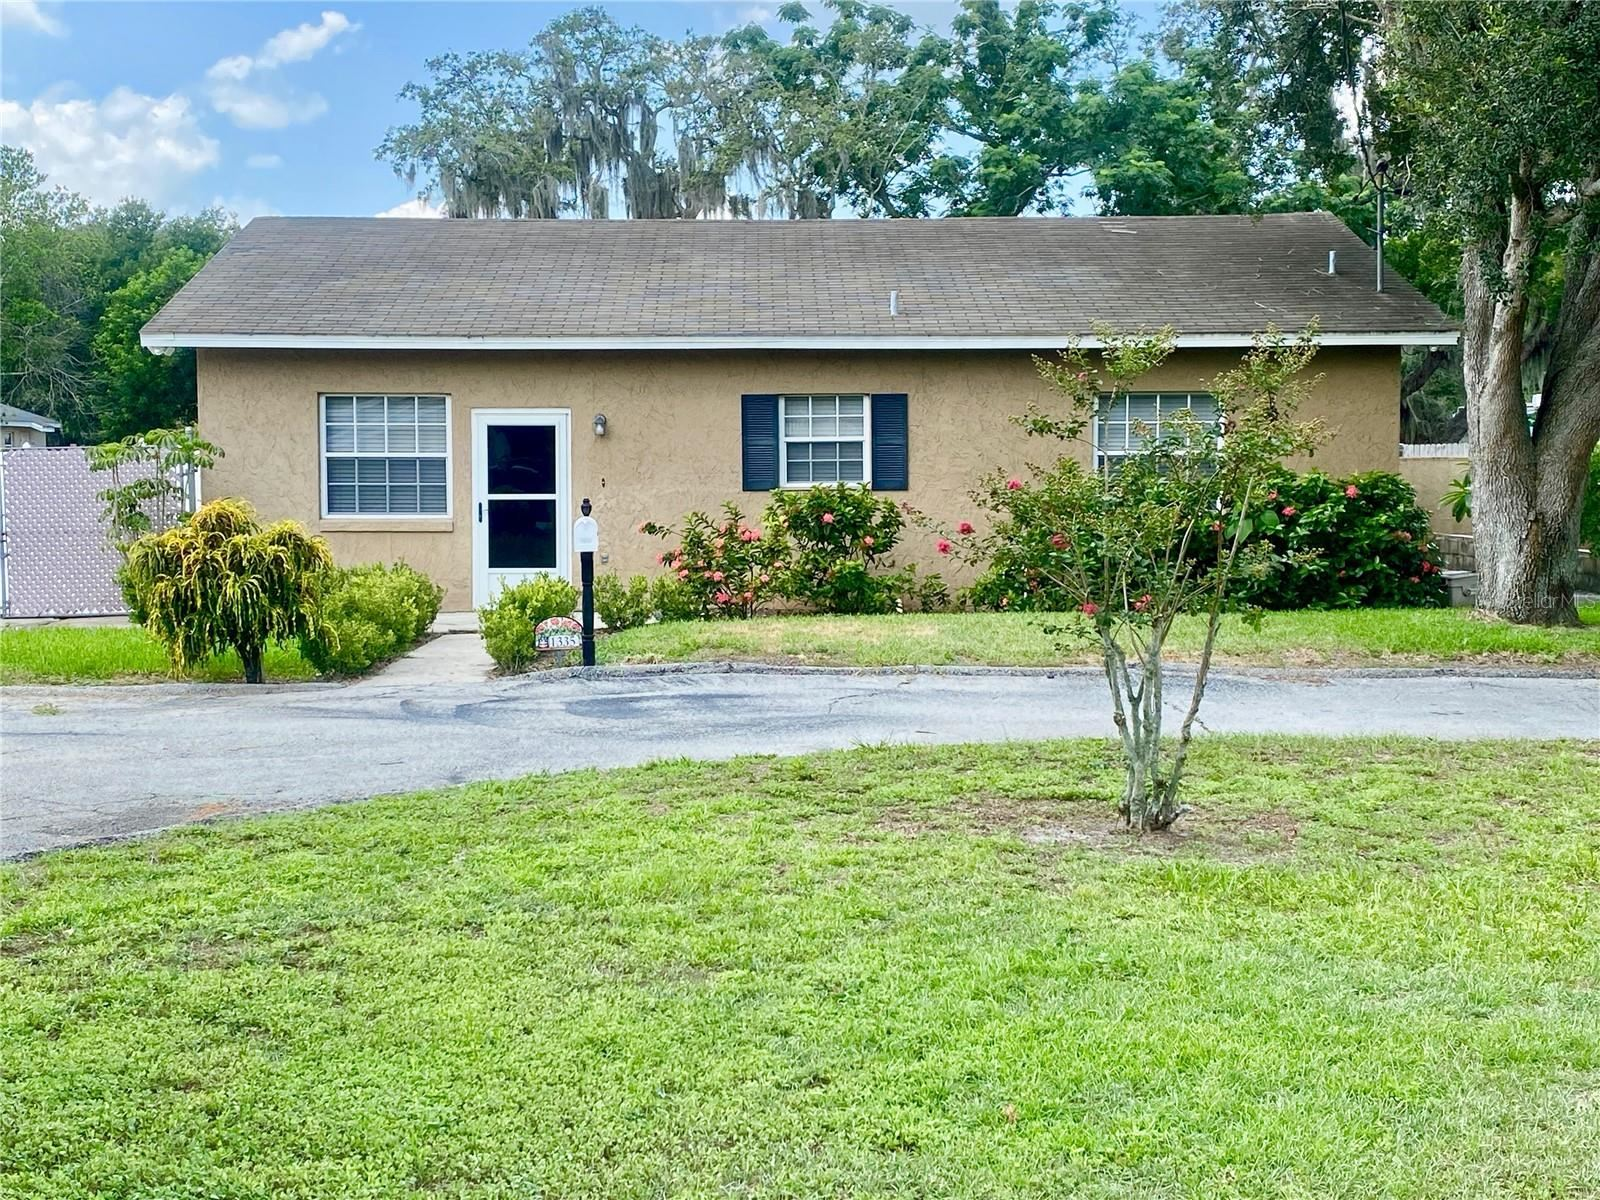 1335 34TH STREET NW, Winter Haven, FL 33881 - #: P4916771